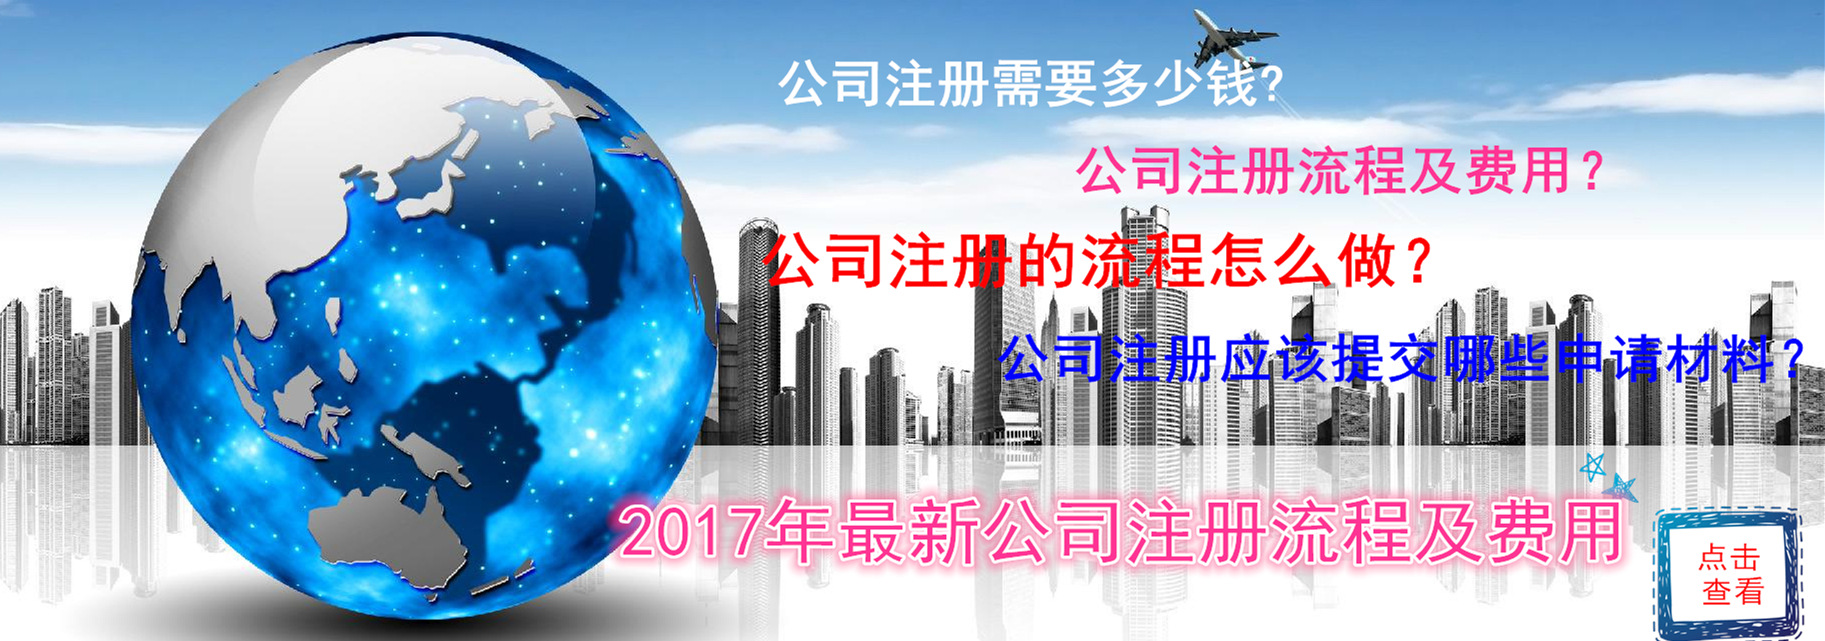 创业优选为您精心挑选了2017年最新北京公司注册流程及费用,为您提供北京公司注册需要多少钱,办理北京外资公司注册的流程及申请材料,办理北京有限公司注册的流程及申请材料,办理内资外资公司注册的流程及申请材料,办理北京有限责任公司注册的流程及申请材料等知识。